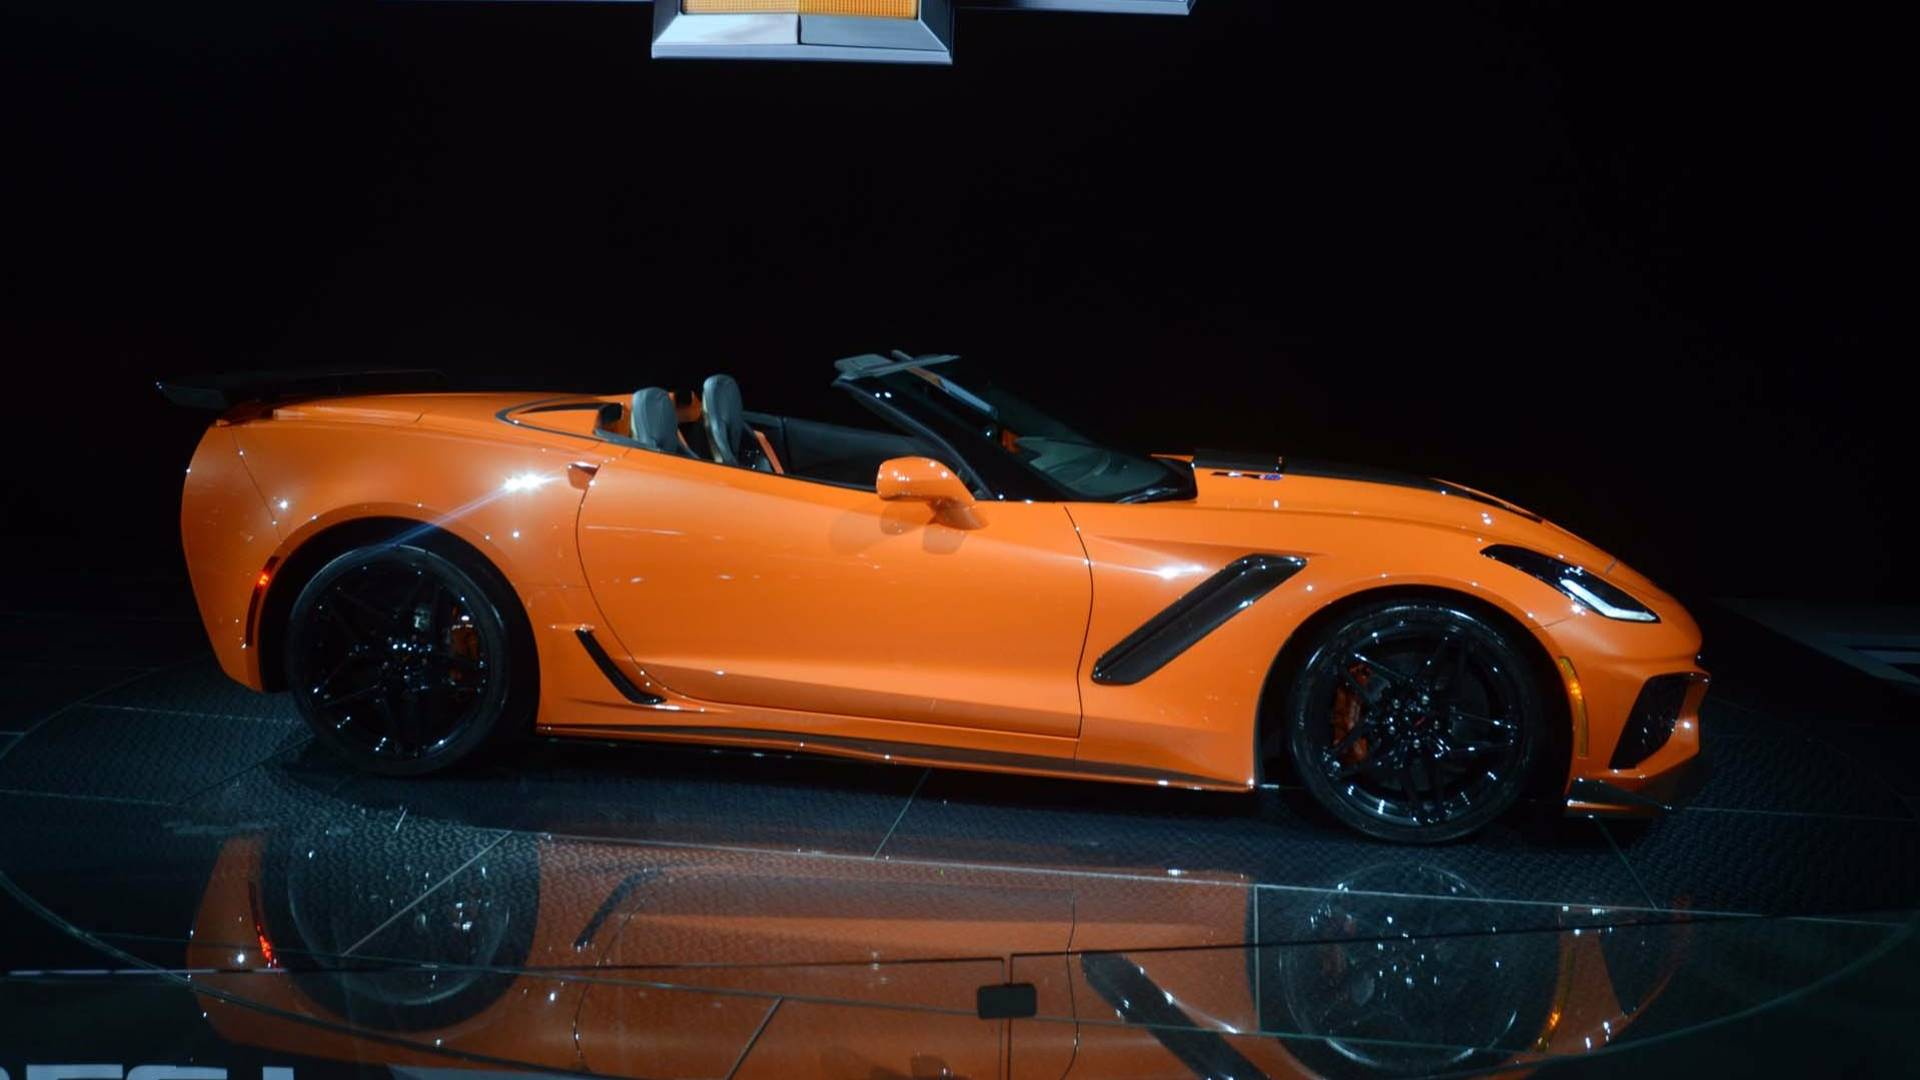 The Most Expensive Chevrolet Corvette Zr1 Costs 155 833